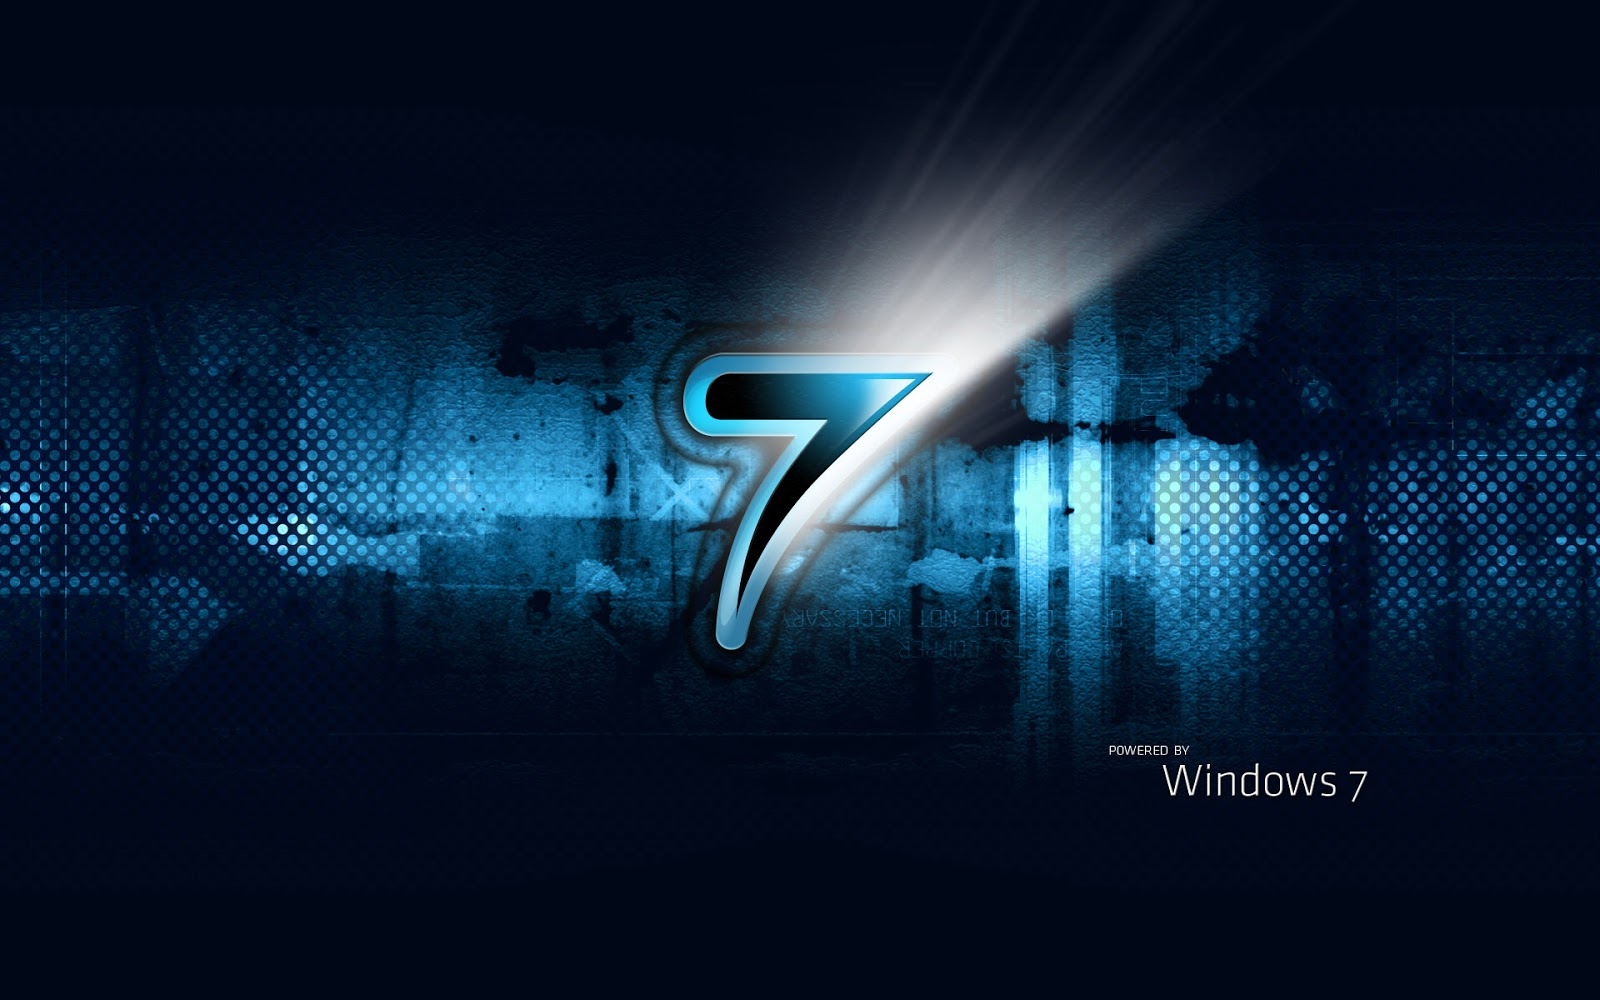 windows+7+wallpaper cinghedotcom+%252814%2529